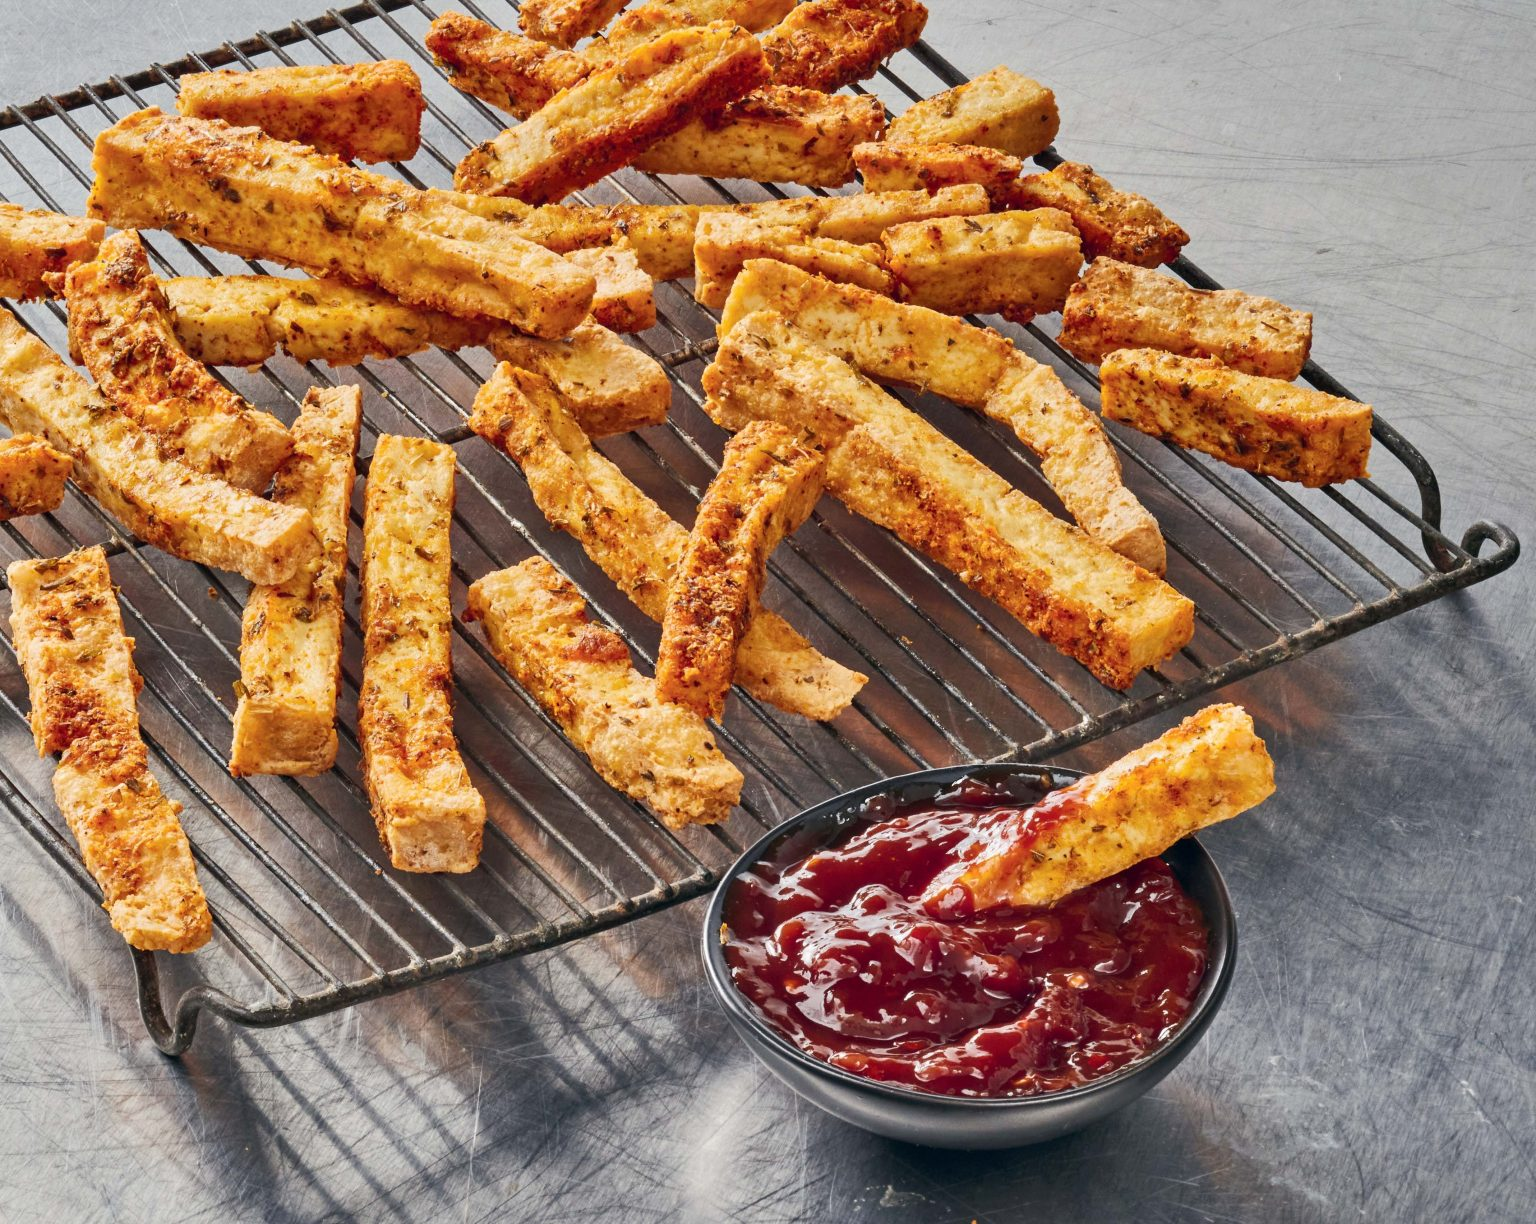 Vegan Tofu Fries with Chili Lime Ketchup